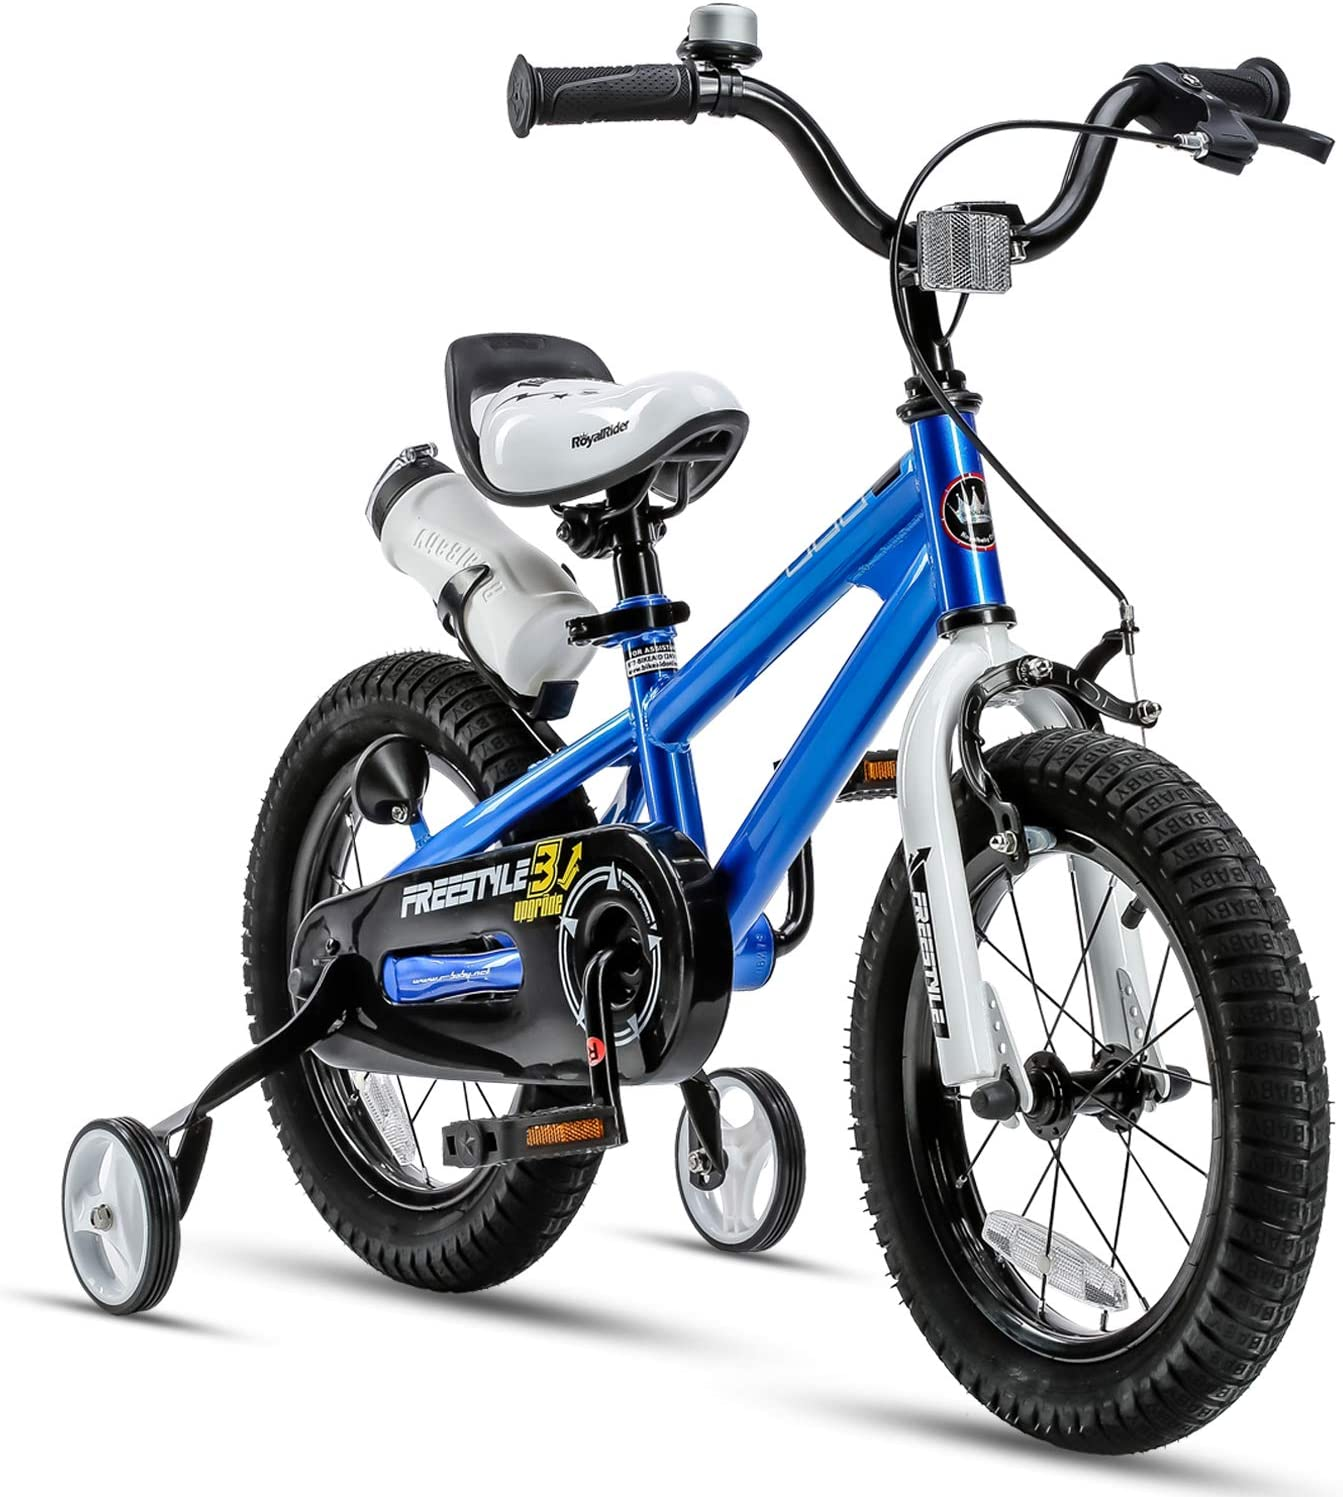 Amazon Com Royalbaby Kids Bike Boys Girls Freestyle Bmx Bicycle With Training Wheels Gifts For Children Bikes 12 Inch Blue Childrens Bicycles Sports Outdoors